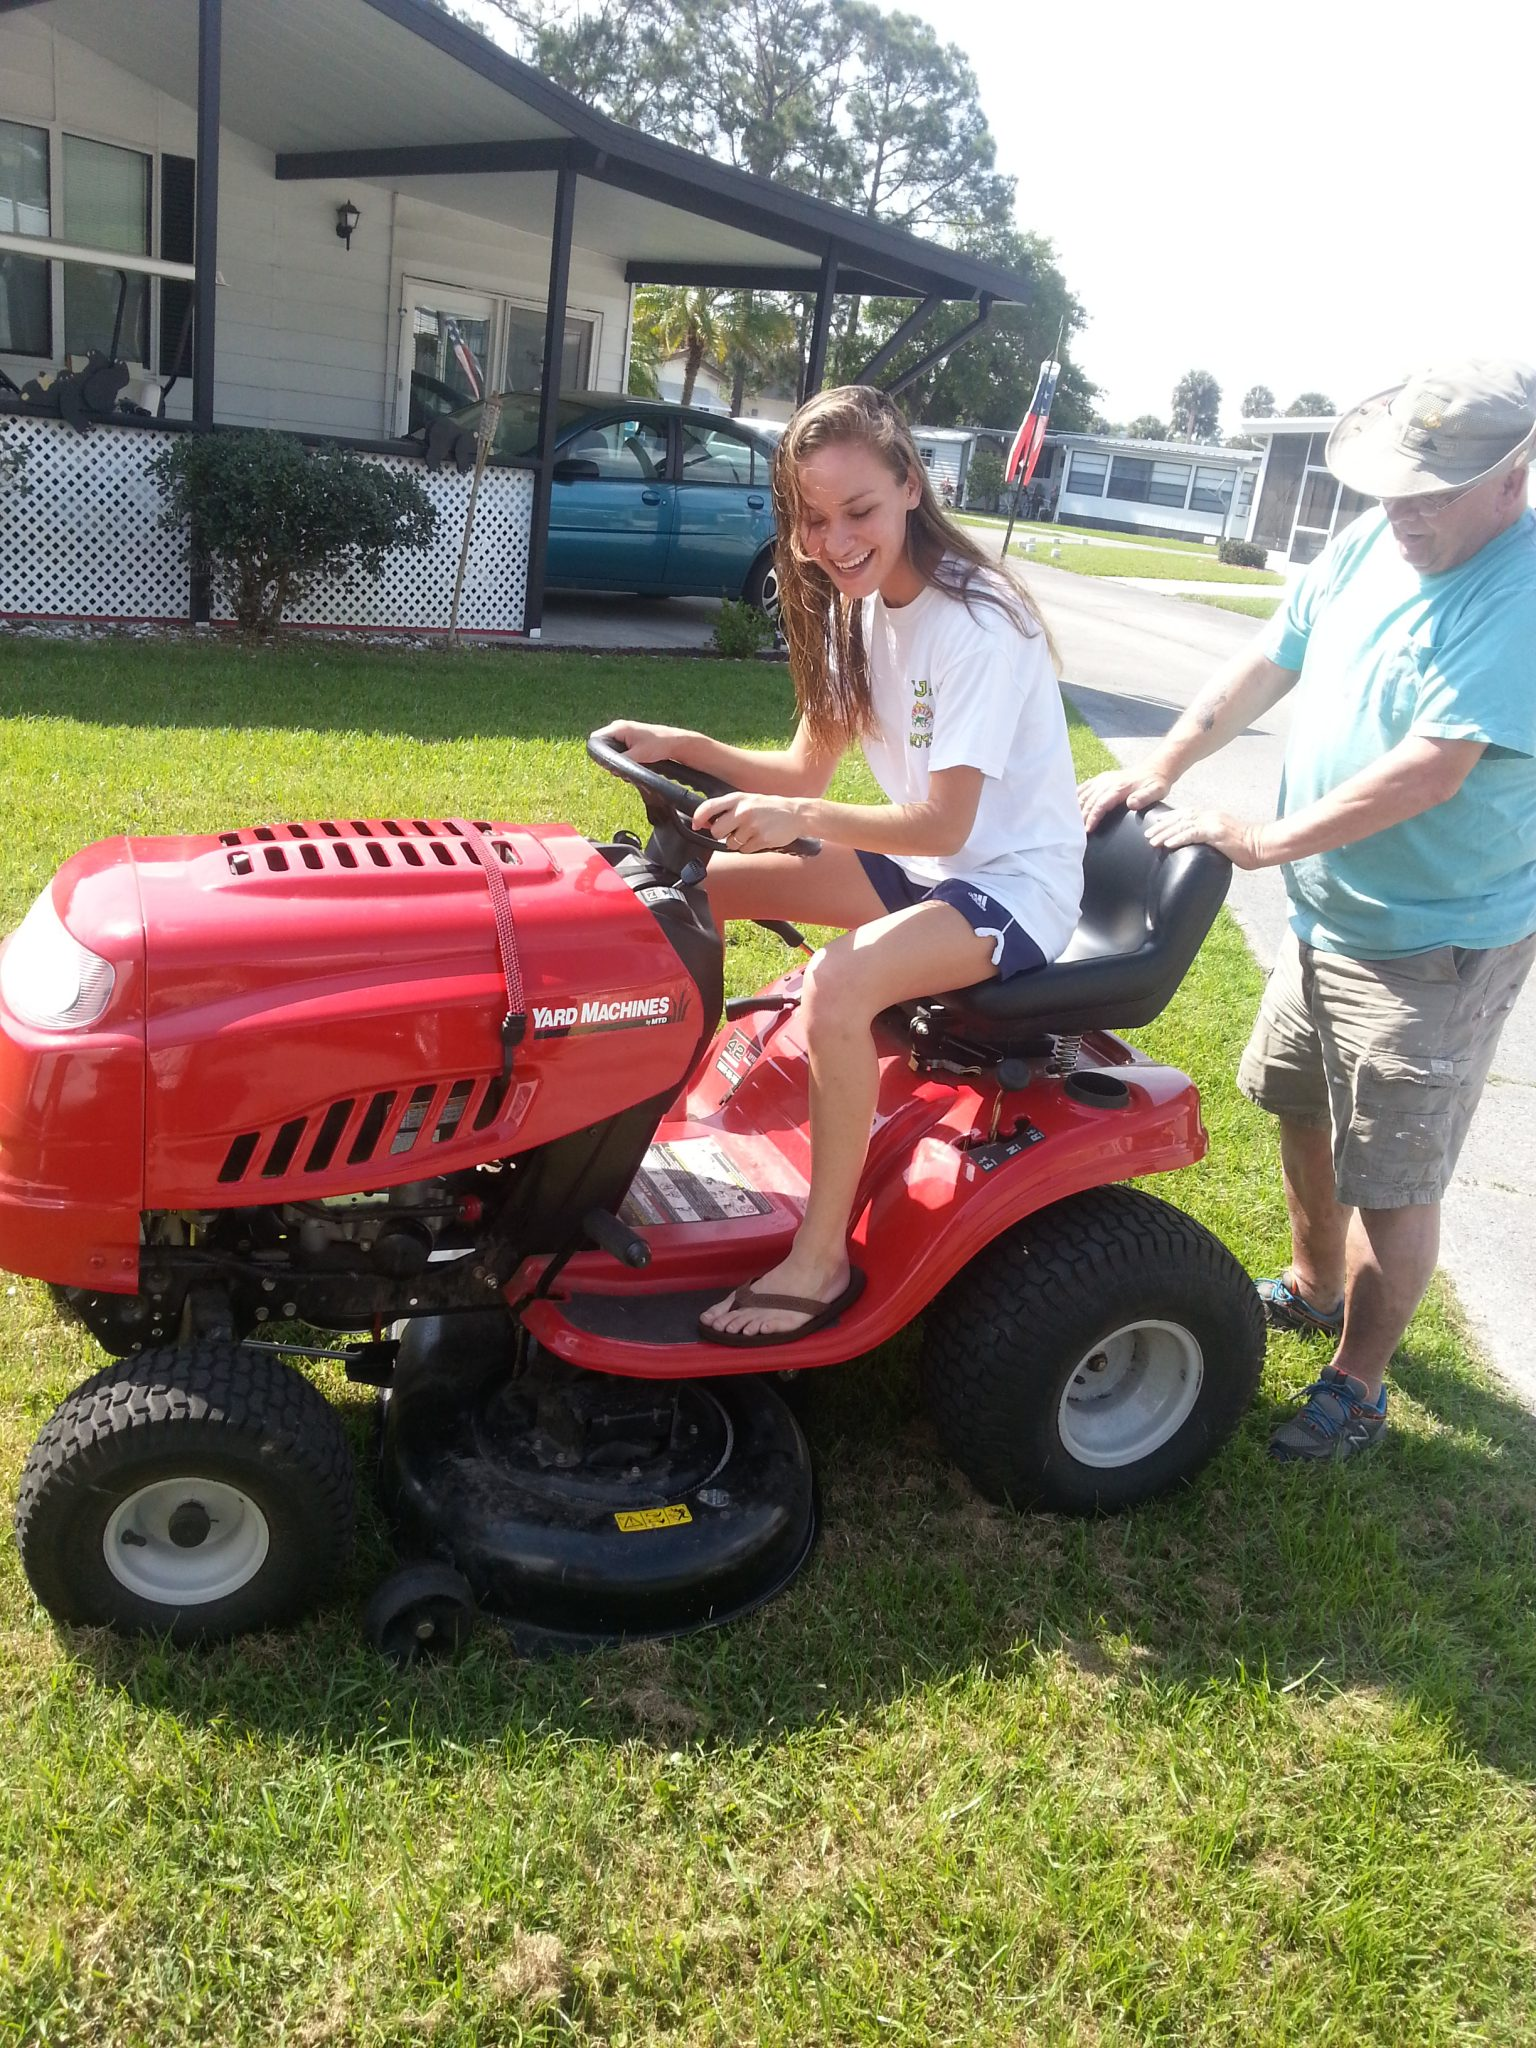 What a great day, Brittany was either too short or not heavy enough to keep the seat down to keep the mower going.